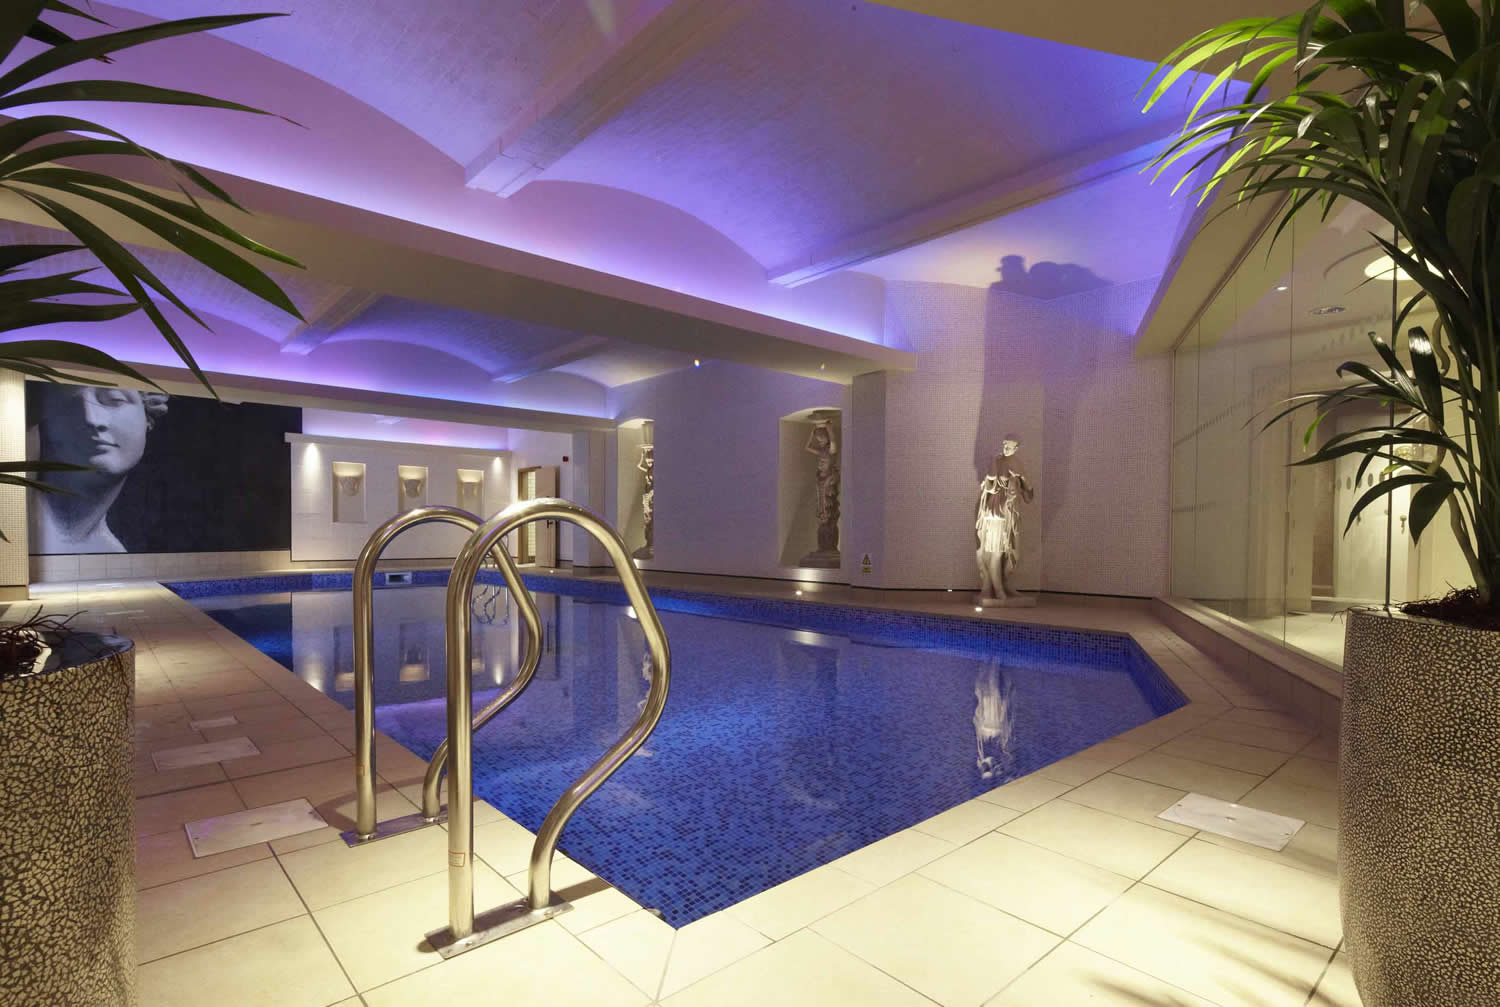 Brighton Spa Hotels With Pool Newatvs Info